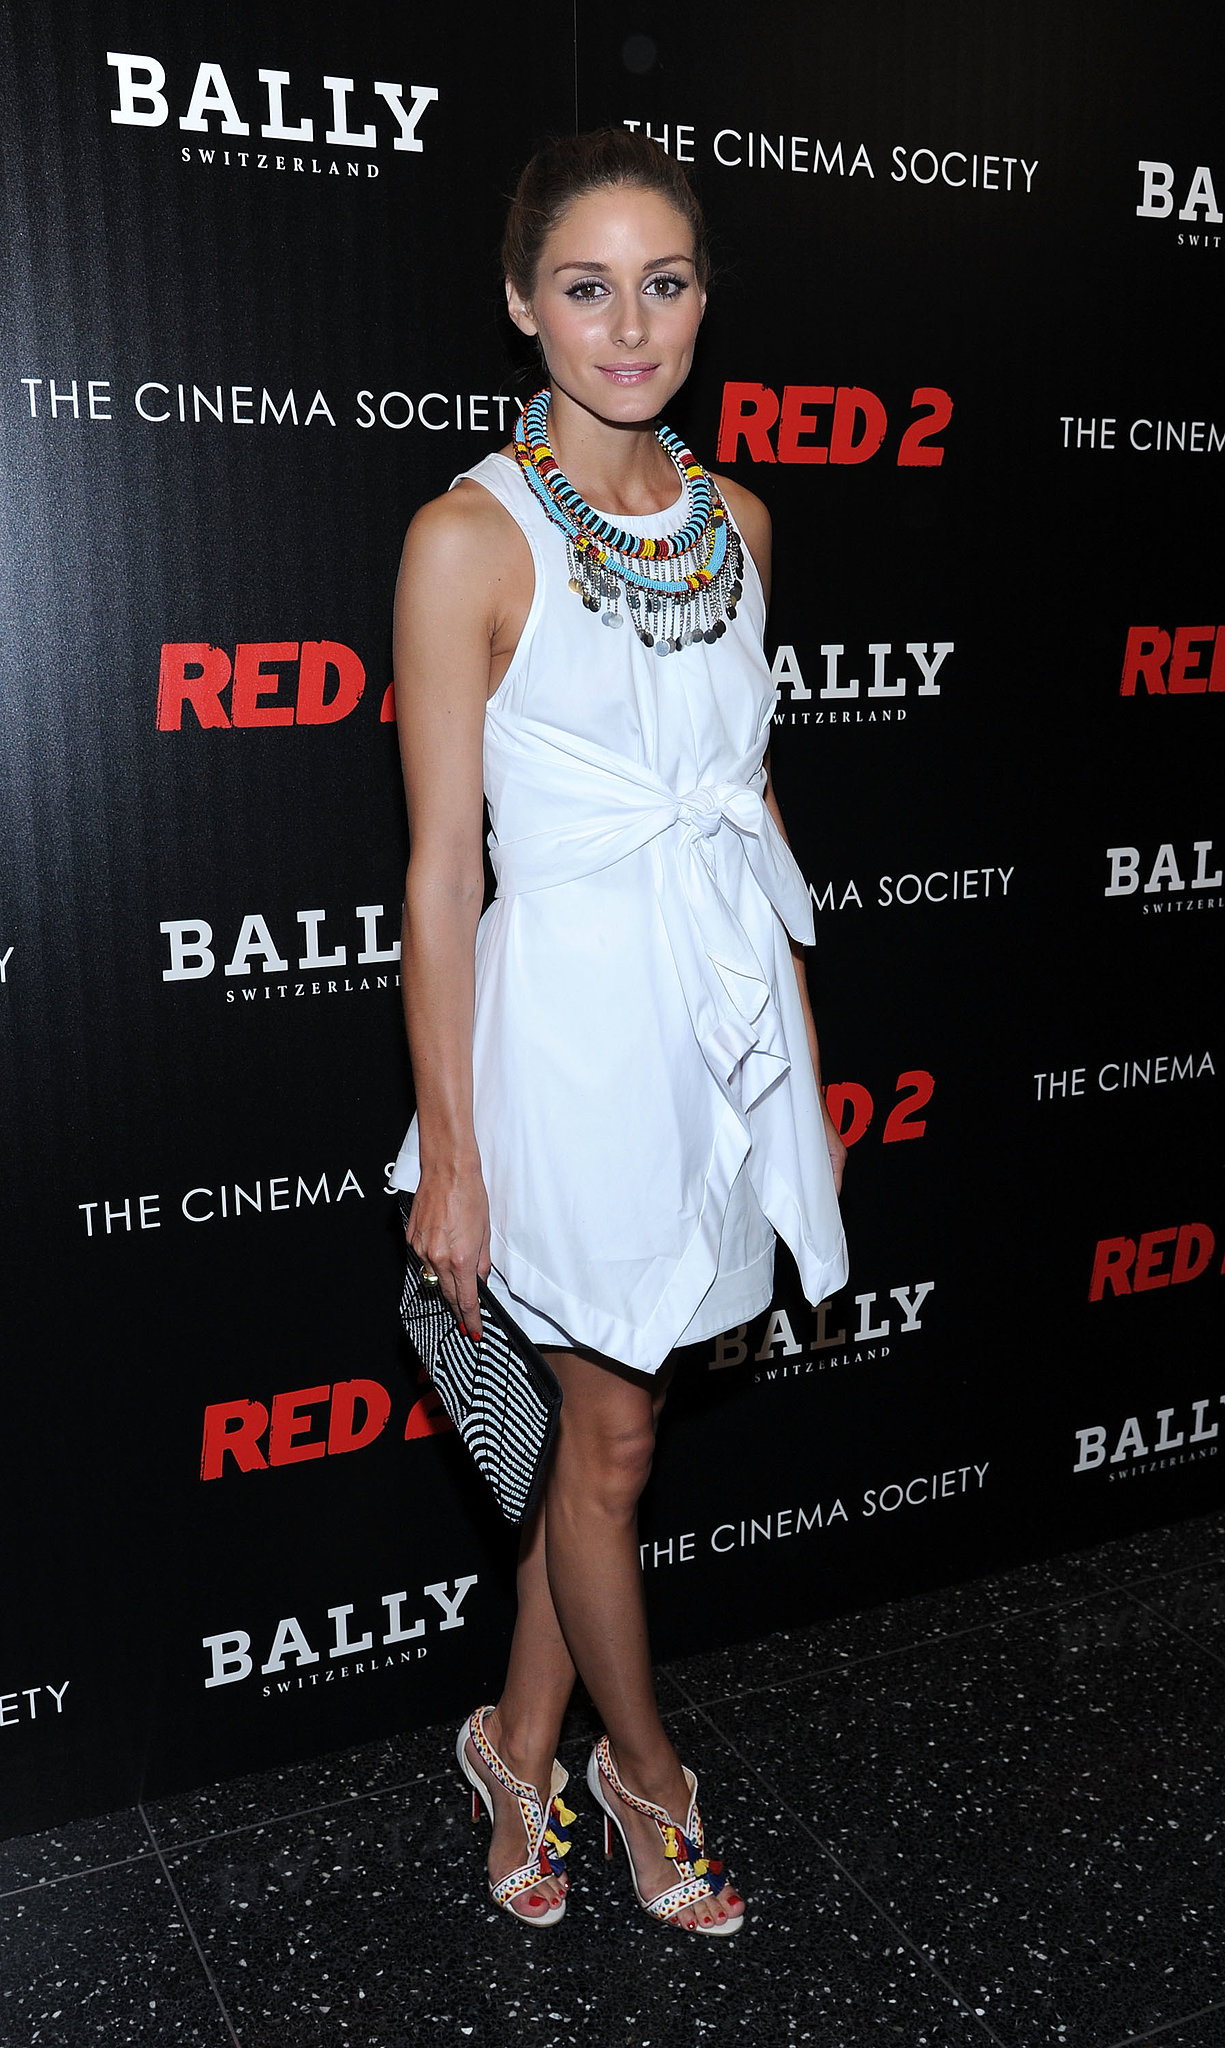 For NYC's Red 2 screening, Olivia dressed up her white Summer mini with colorful beads and a pair of eclectic heels.